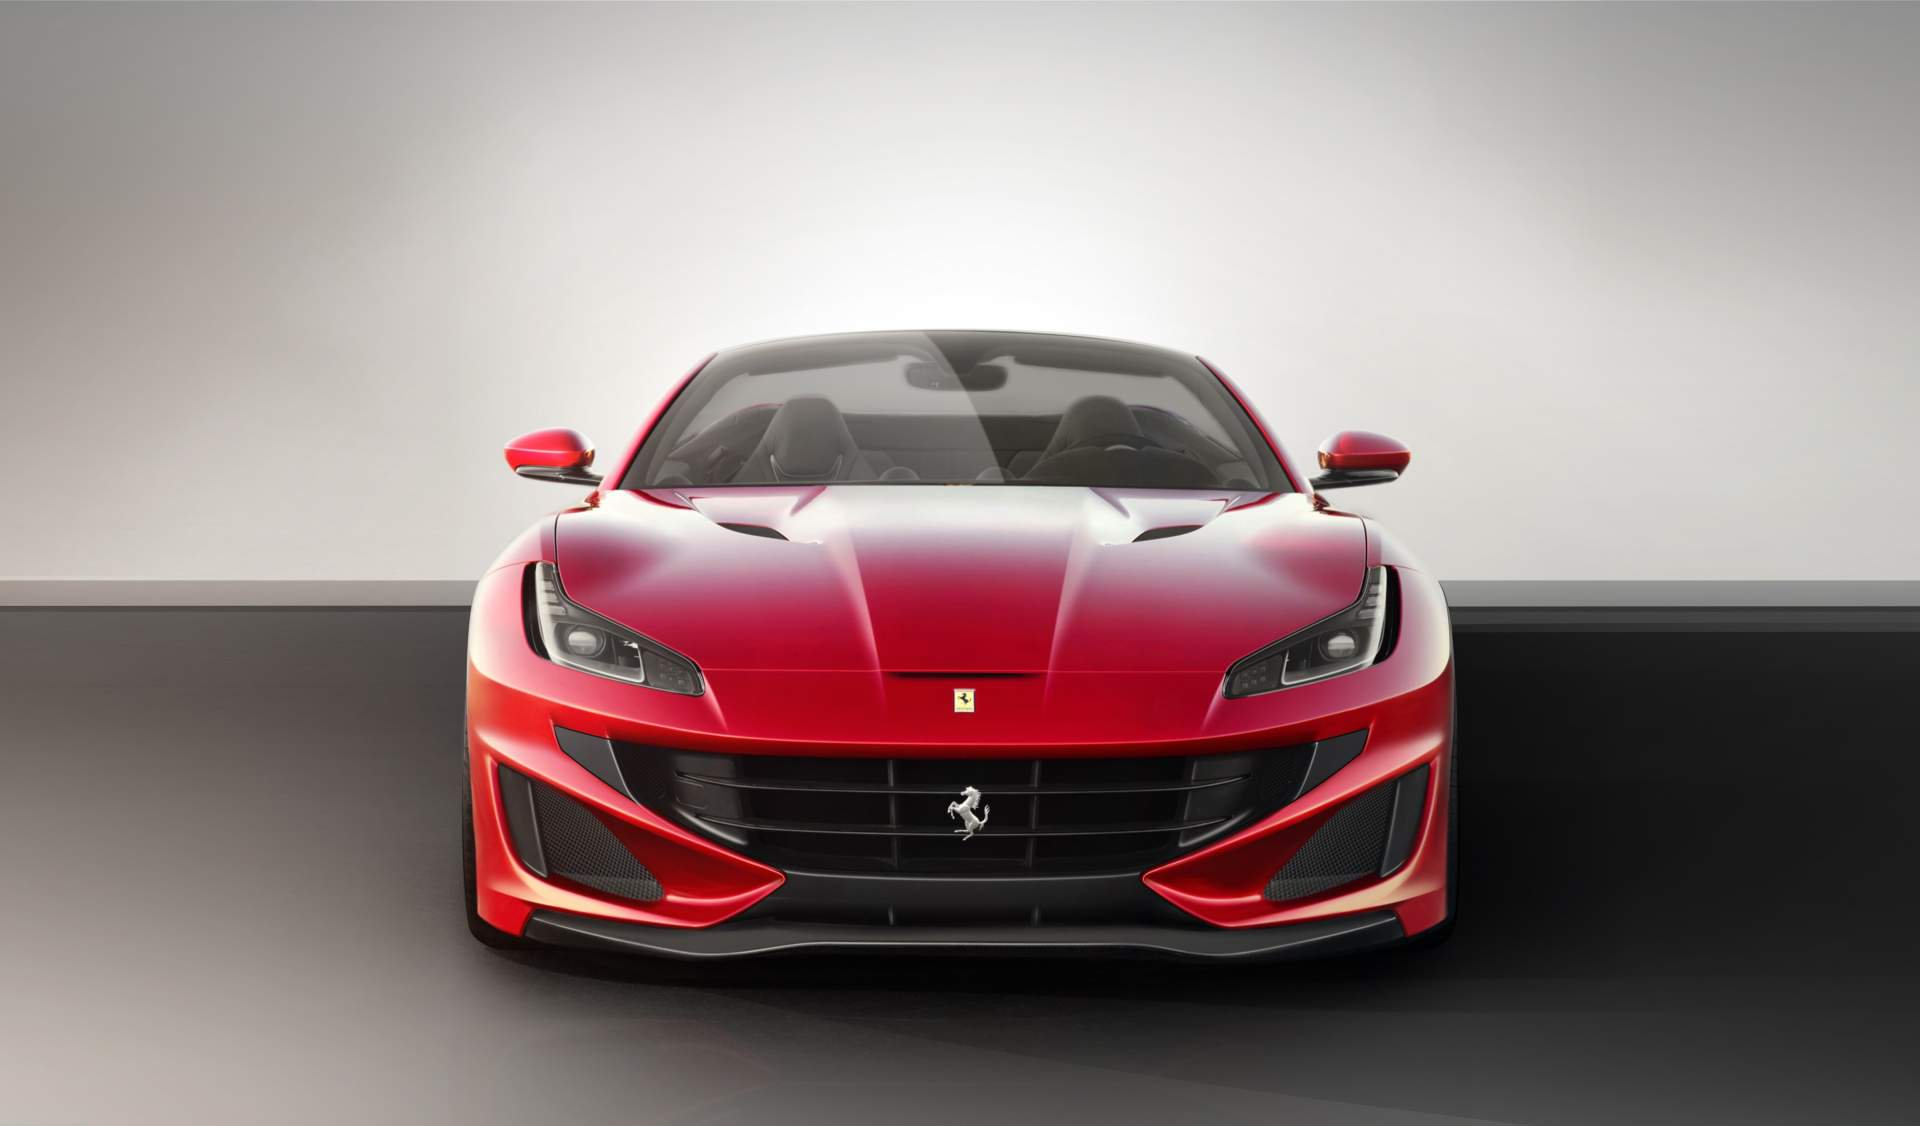 Ferrari Portofino Body Kit